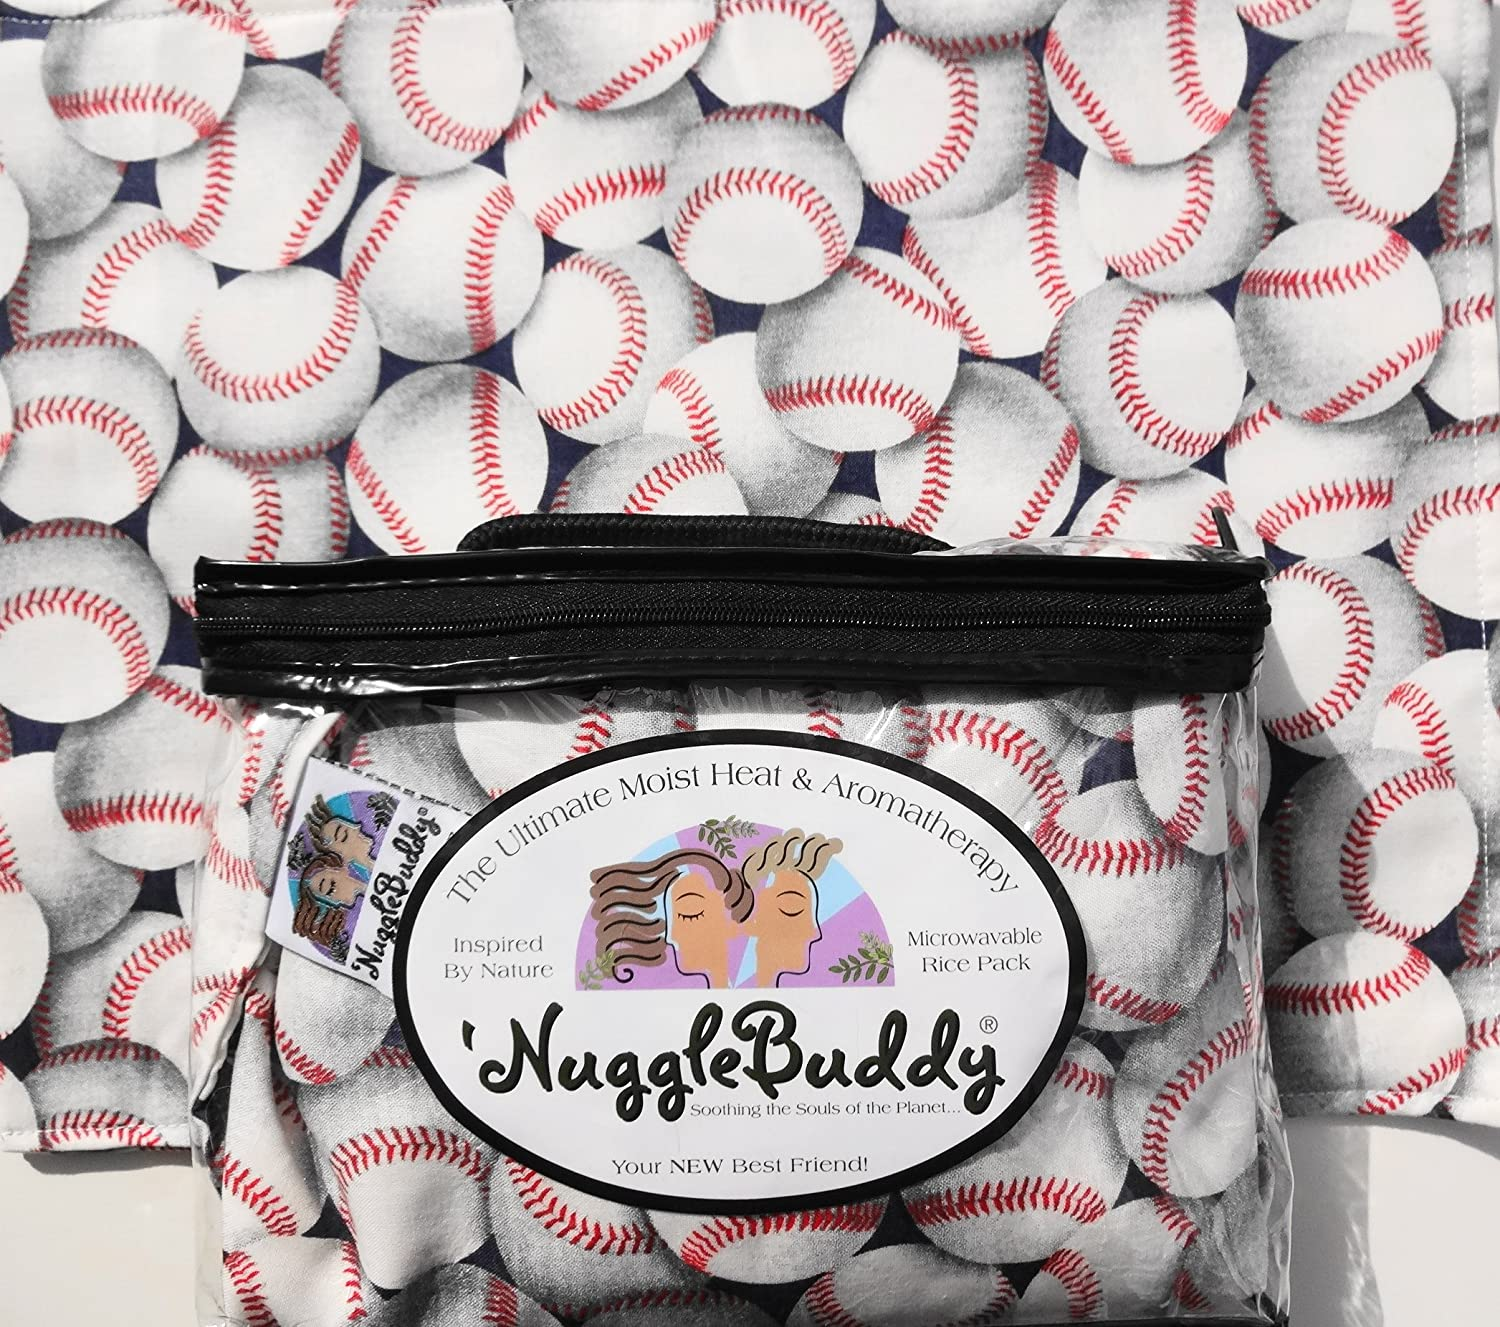 'NUGGLEBUDDY Microwavable Moist Heat & Aromatherapy Organic Rice Pack. Fun Fabric for Baseball Players and Fans! with SPEARMINT EUCALYPTUS Aromatherapy.